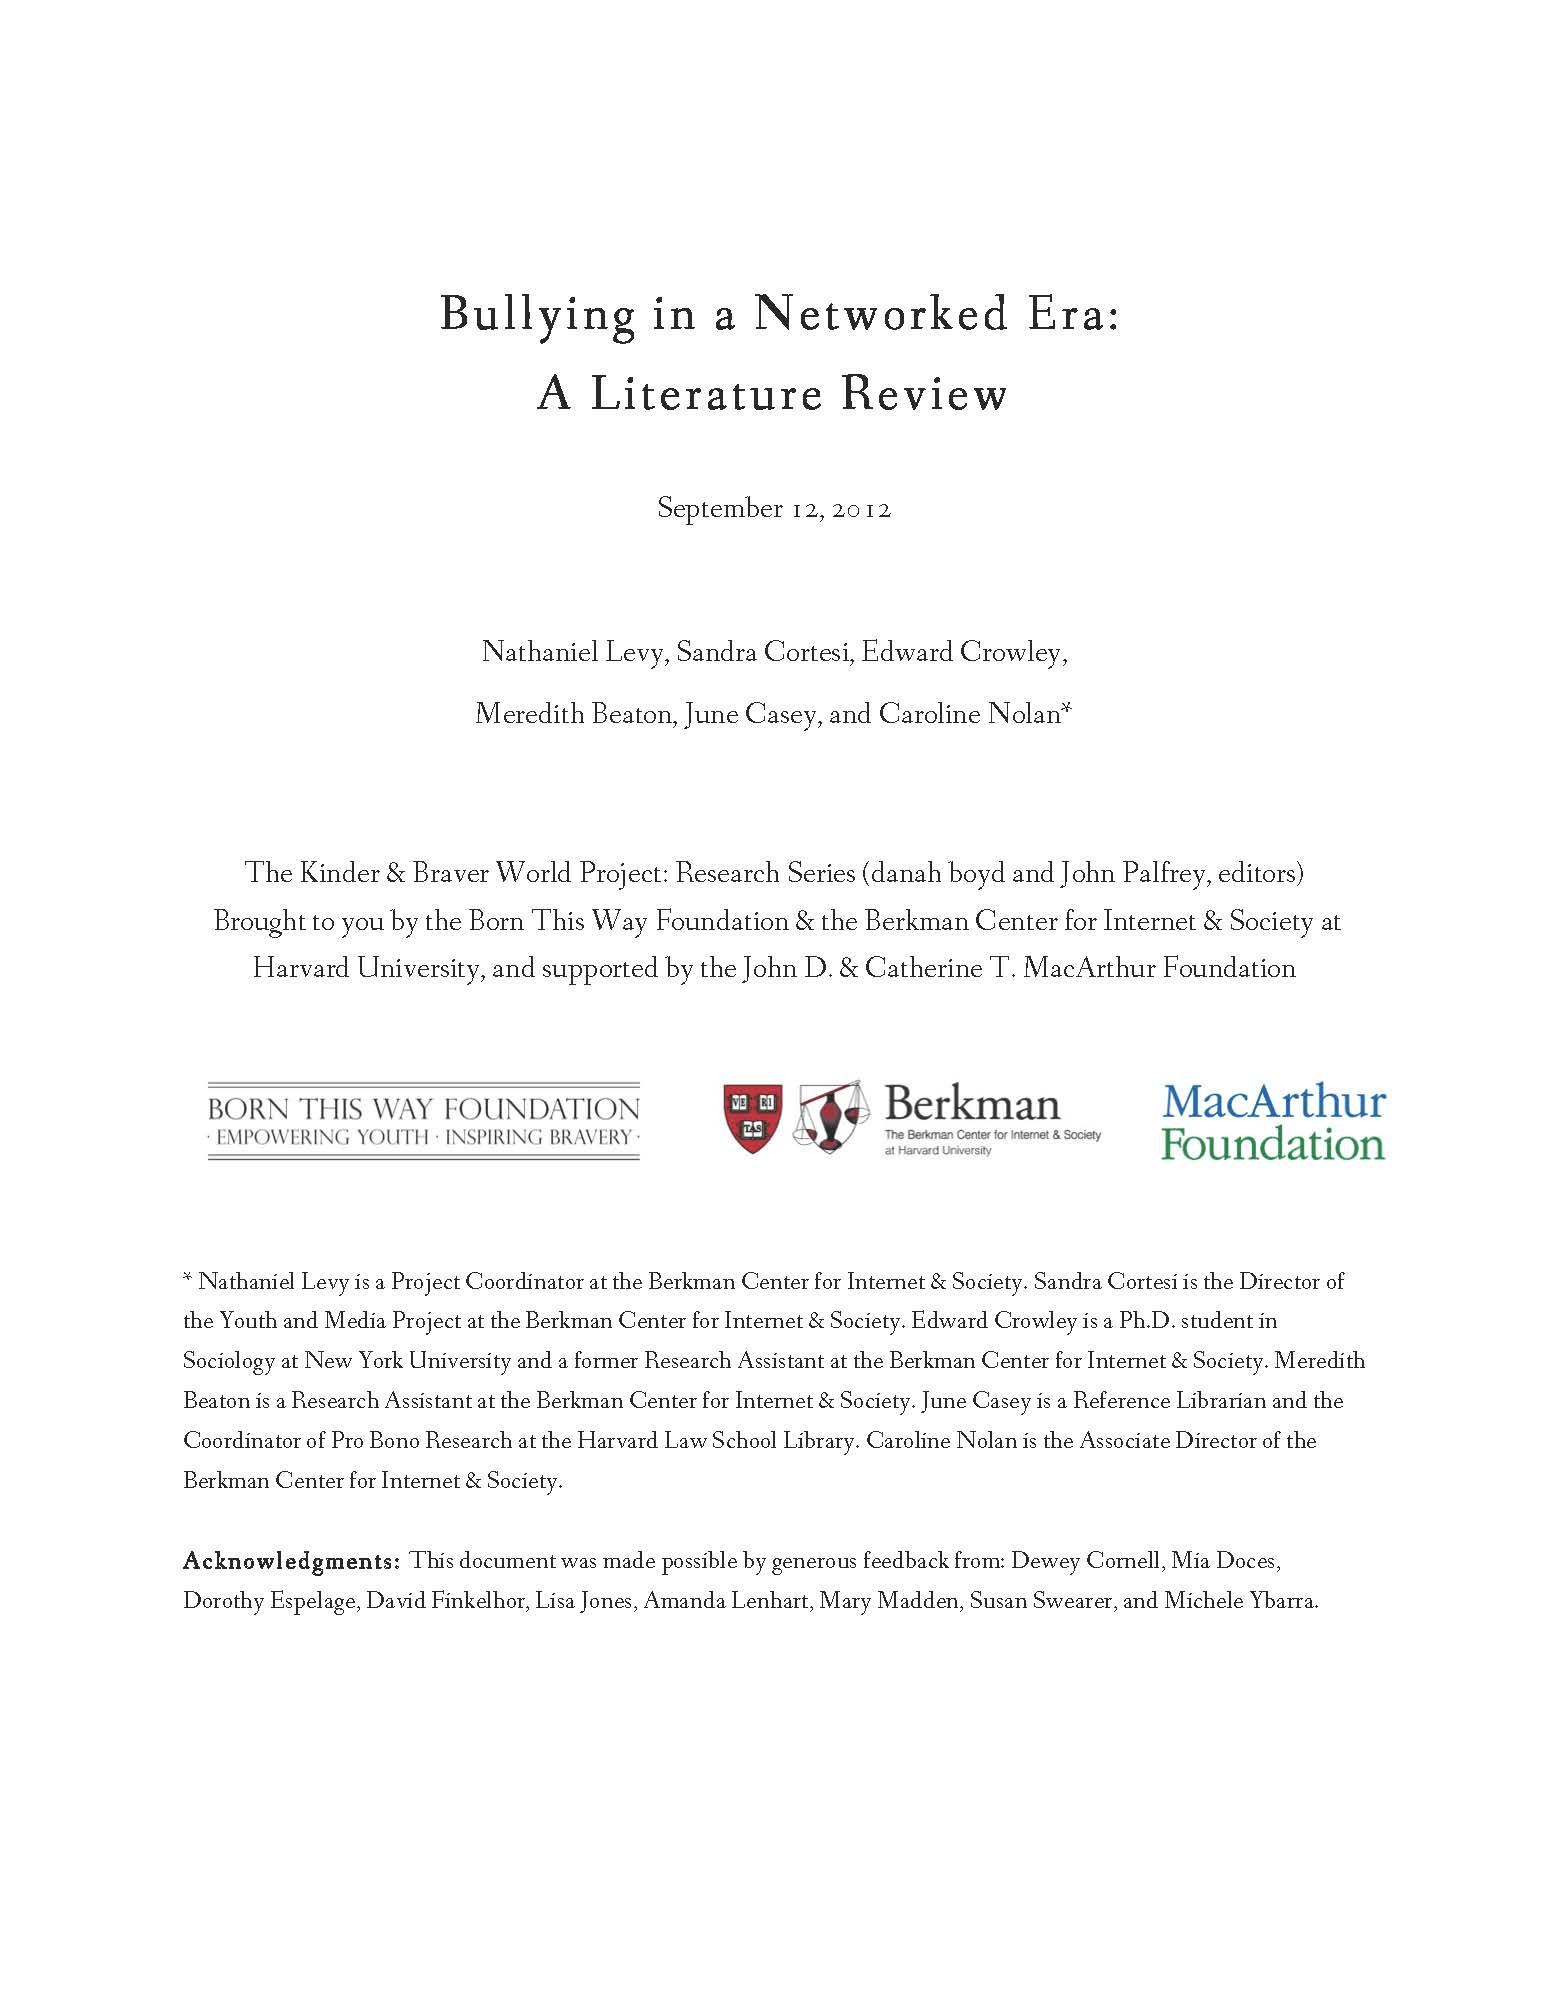 Bullying in a Networked Era: A Literature Review | Berkman ...